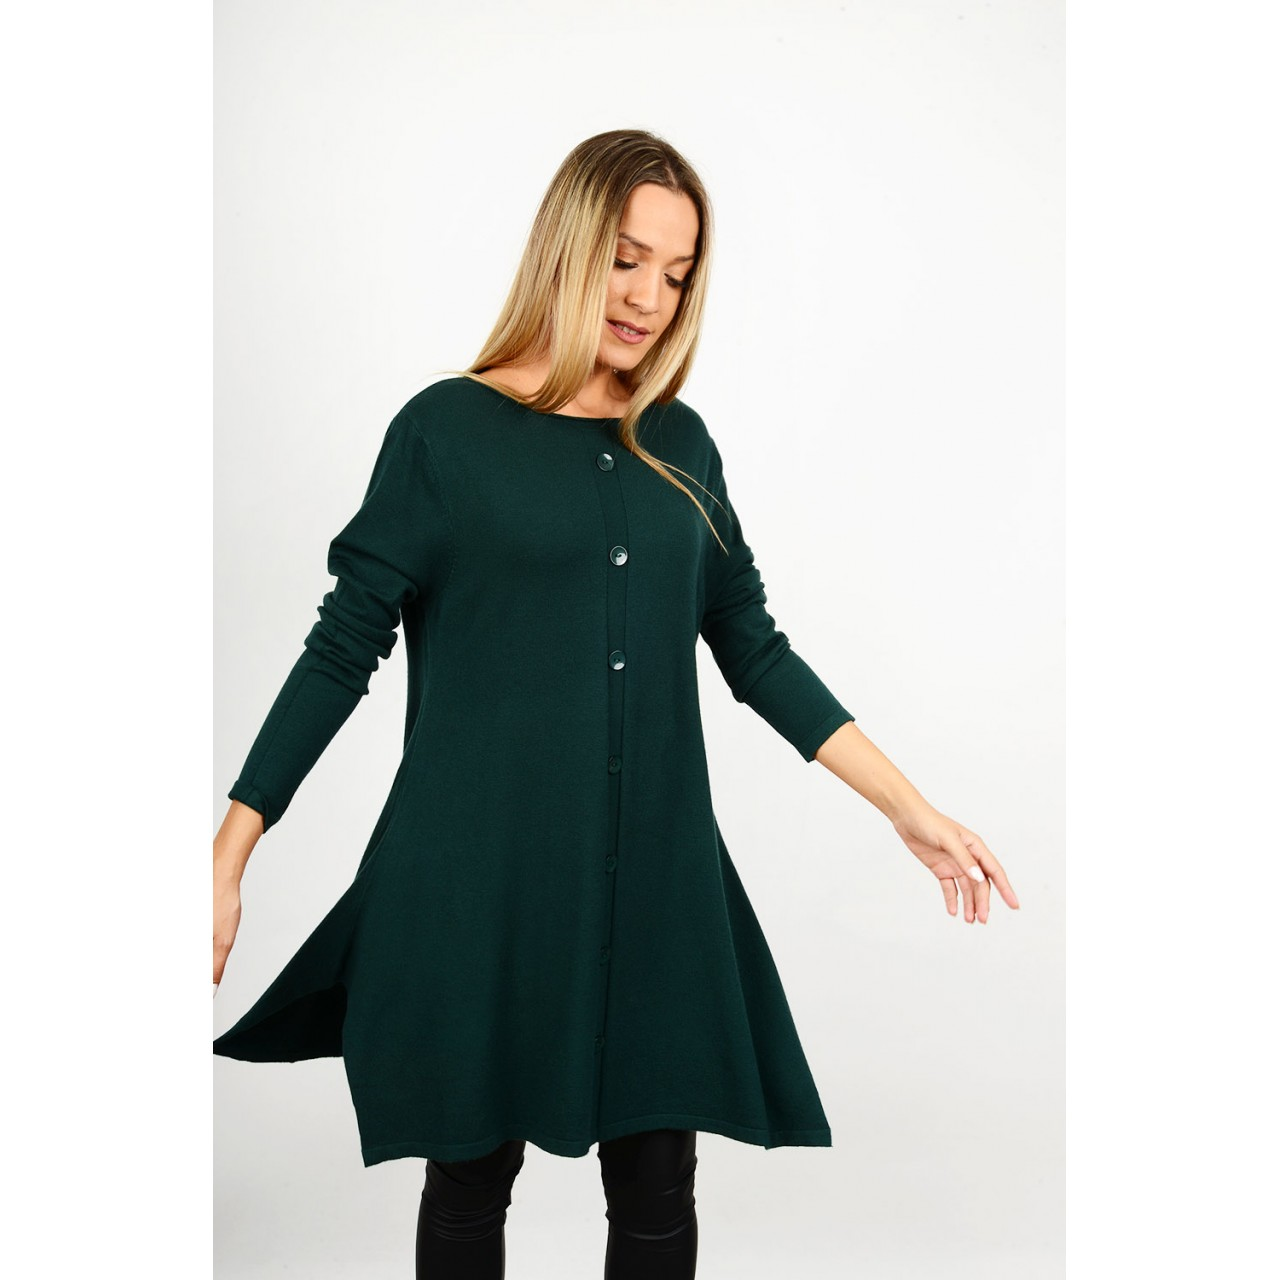 Asymmetrical knitted blouse/dress with buttons